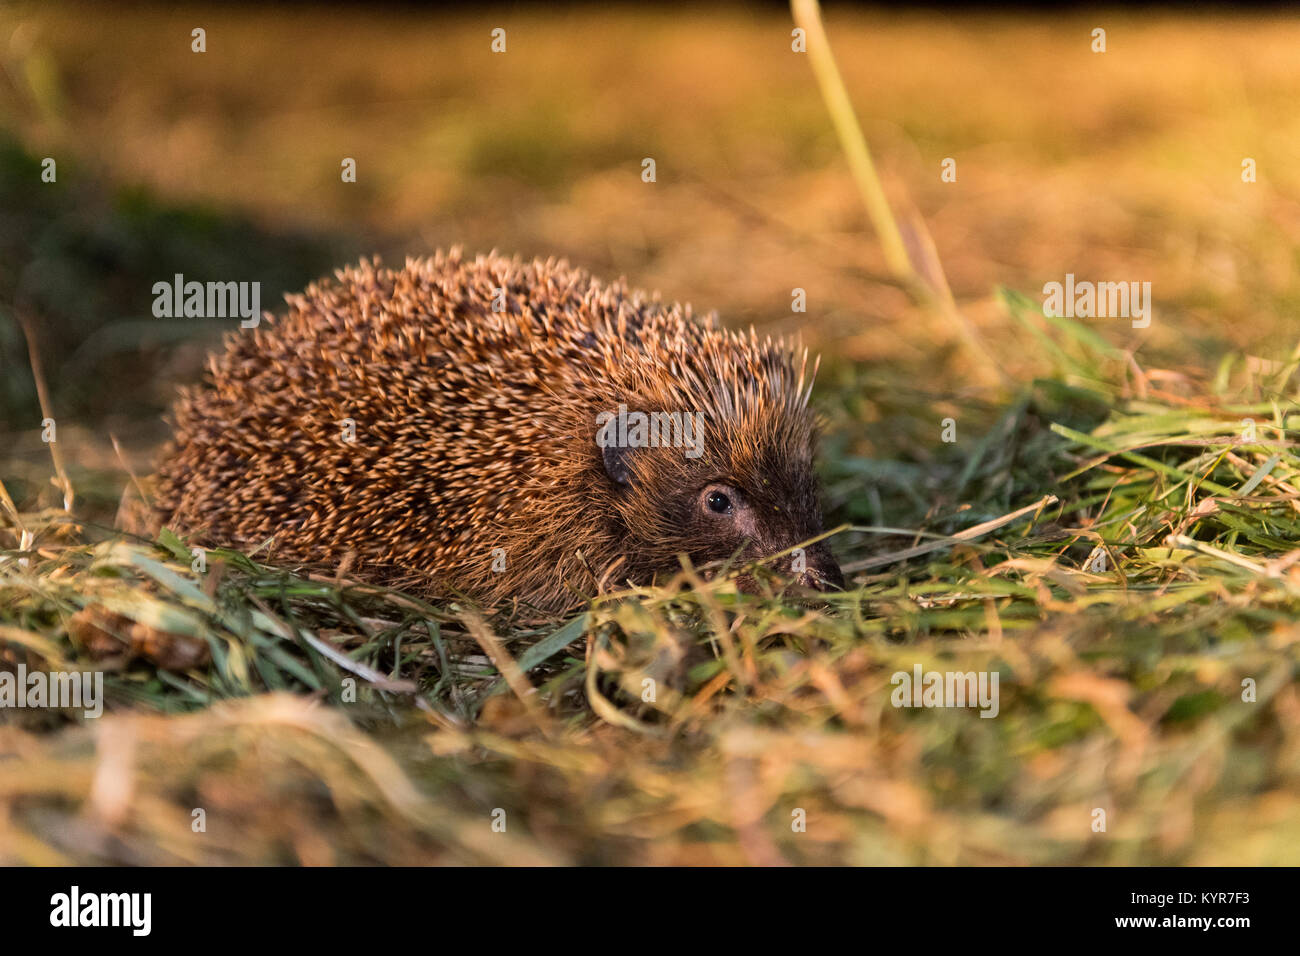 A Common Hedgehog, Erinaceus europaeus, found in hay meadow after harvesting at nightime. North Yorkshire, UK. - Stock Image